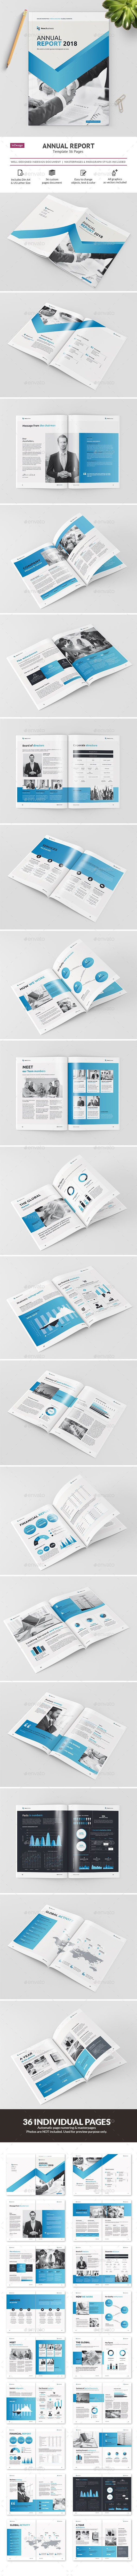 Annual Report 2018 by corrella Live preview Annual Report Annual Report 2018 Features:Indesign Template for a 36 pages Annual Report. Format DIN A4 and US letter